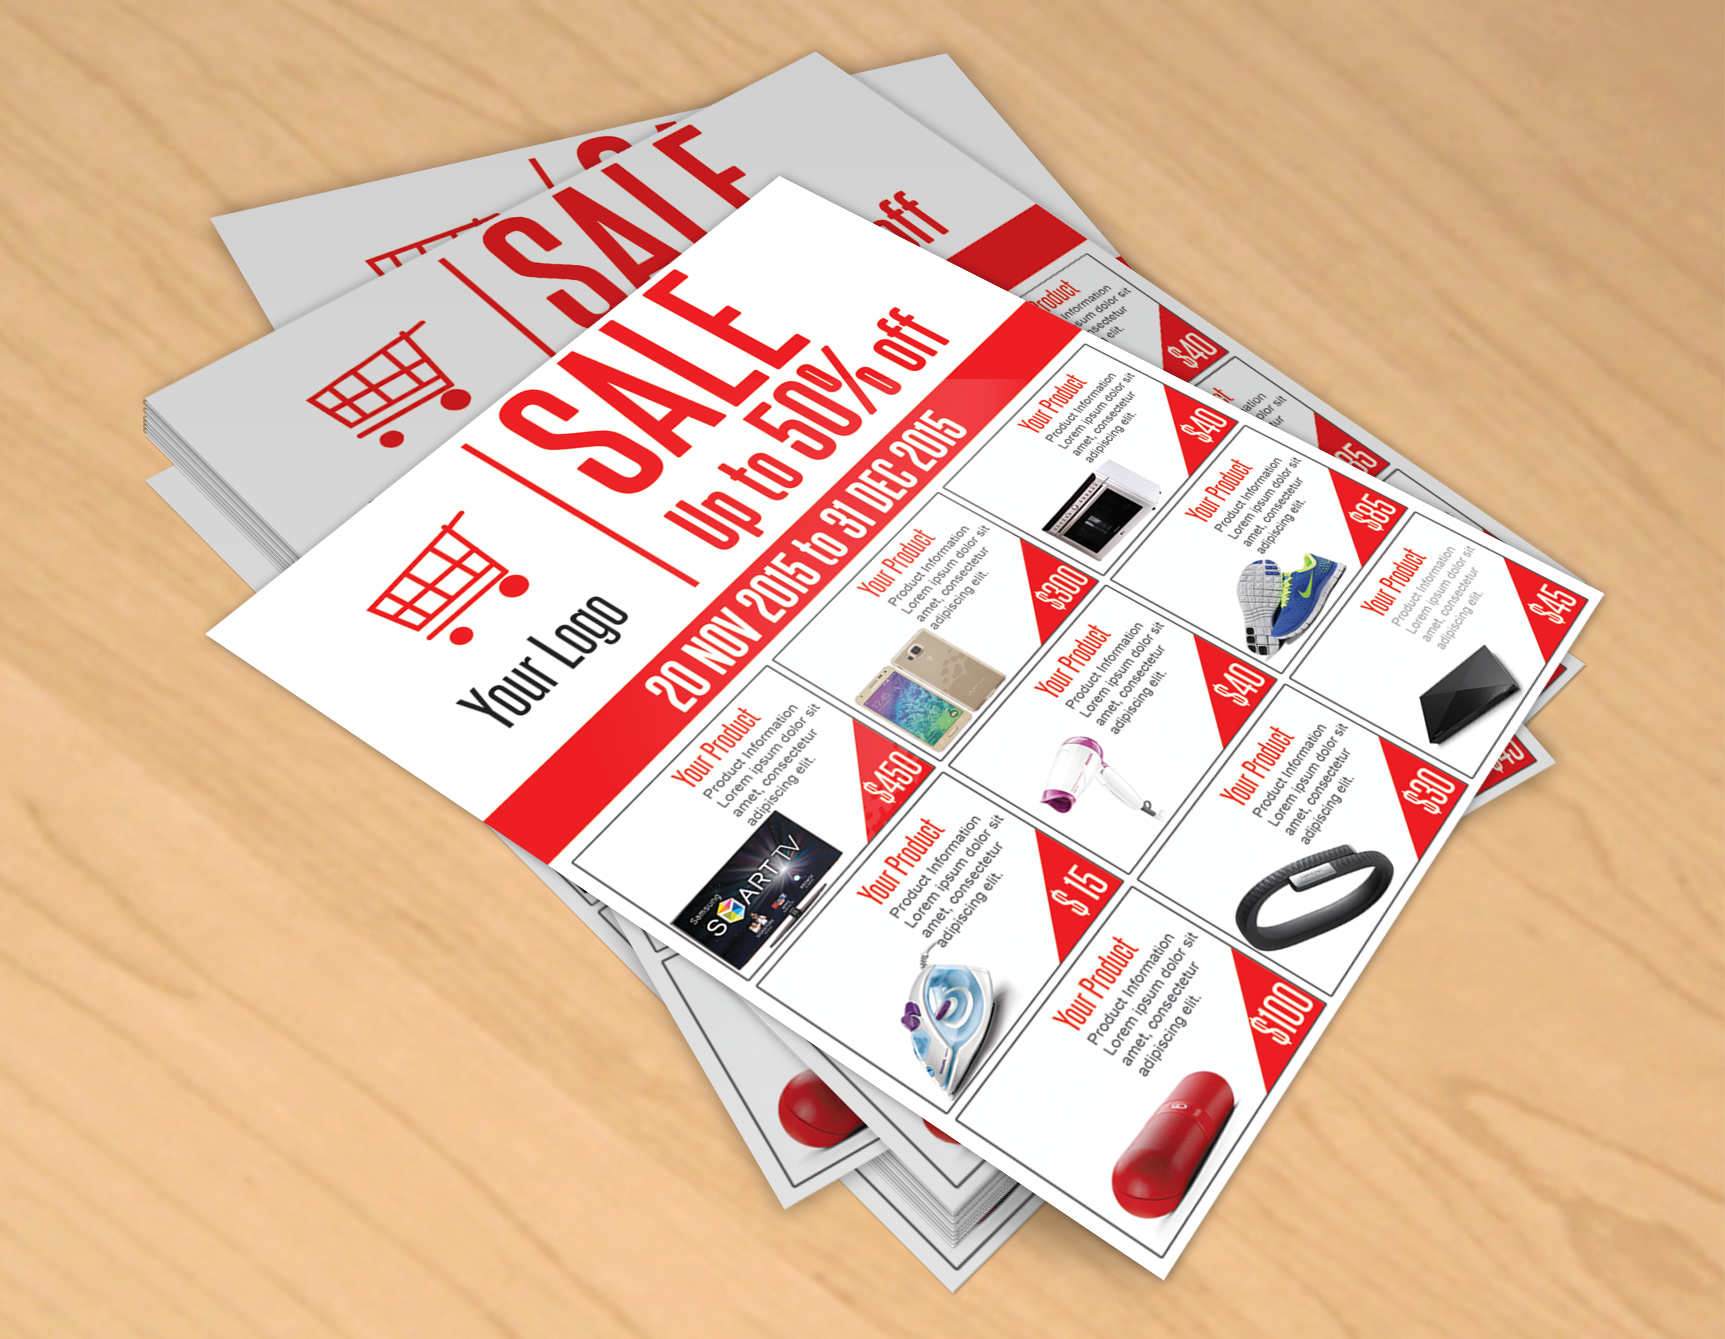 sale flyer free psd template download on behance